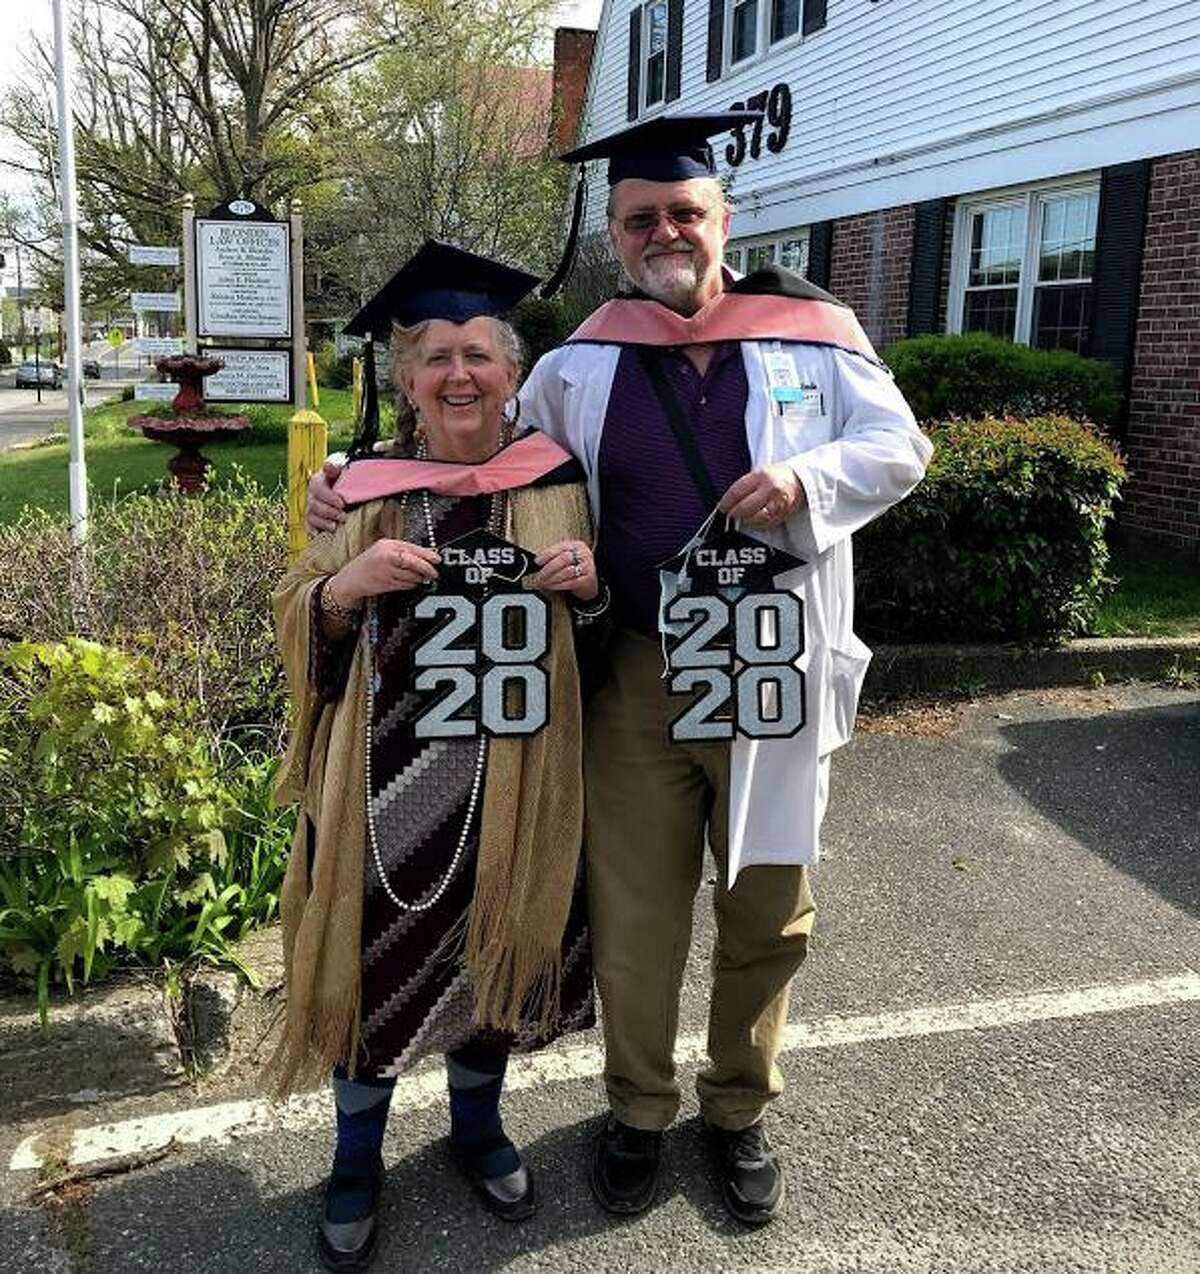 Torrington optometrist Dr. Matthew Blondin and Torrington attorney Audrey Blondin recently completed their studies at the University of Connecticut Health Center in Farmington and received their Master of Public Health degrees during virtual commencement activities held in Storrs May 11. Both received certificates in public health in 2009, and resumed their studies in 2015. Audrey Blondin was also the recipient of the UCONN 2020 Susan S. Addiss Award in Applied Public health Practice. This award recognizes the graduating M.P.H. student who best exemplifies the qualities of Susan Addiss: public health advocacy, leadership, demonstrated commitment to the community and academic performance.